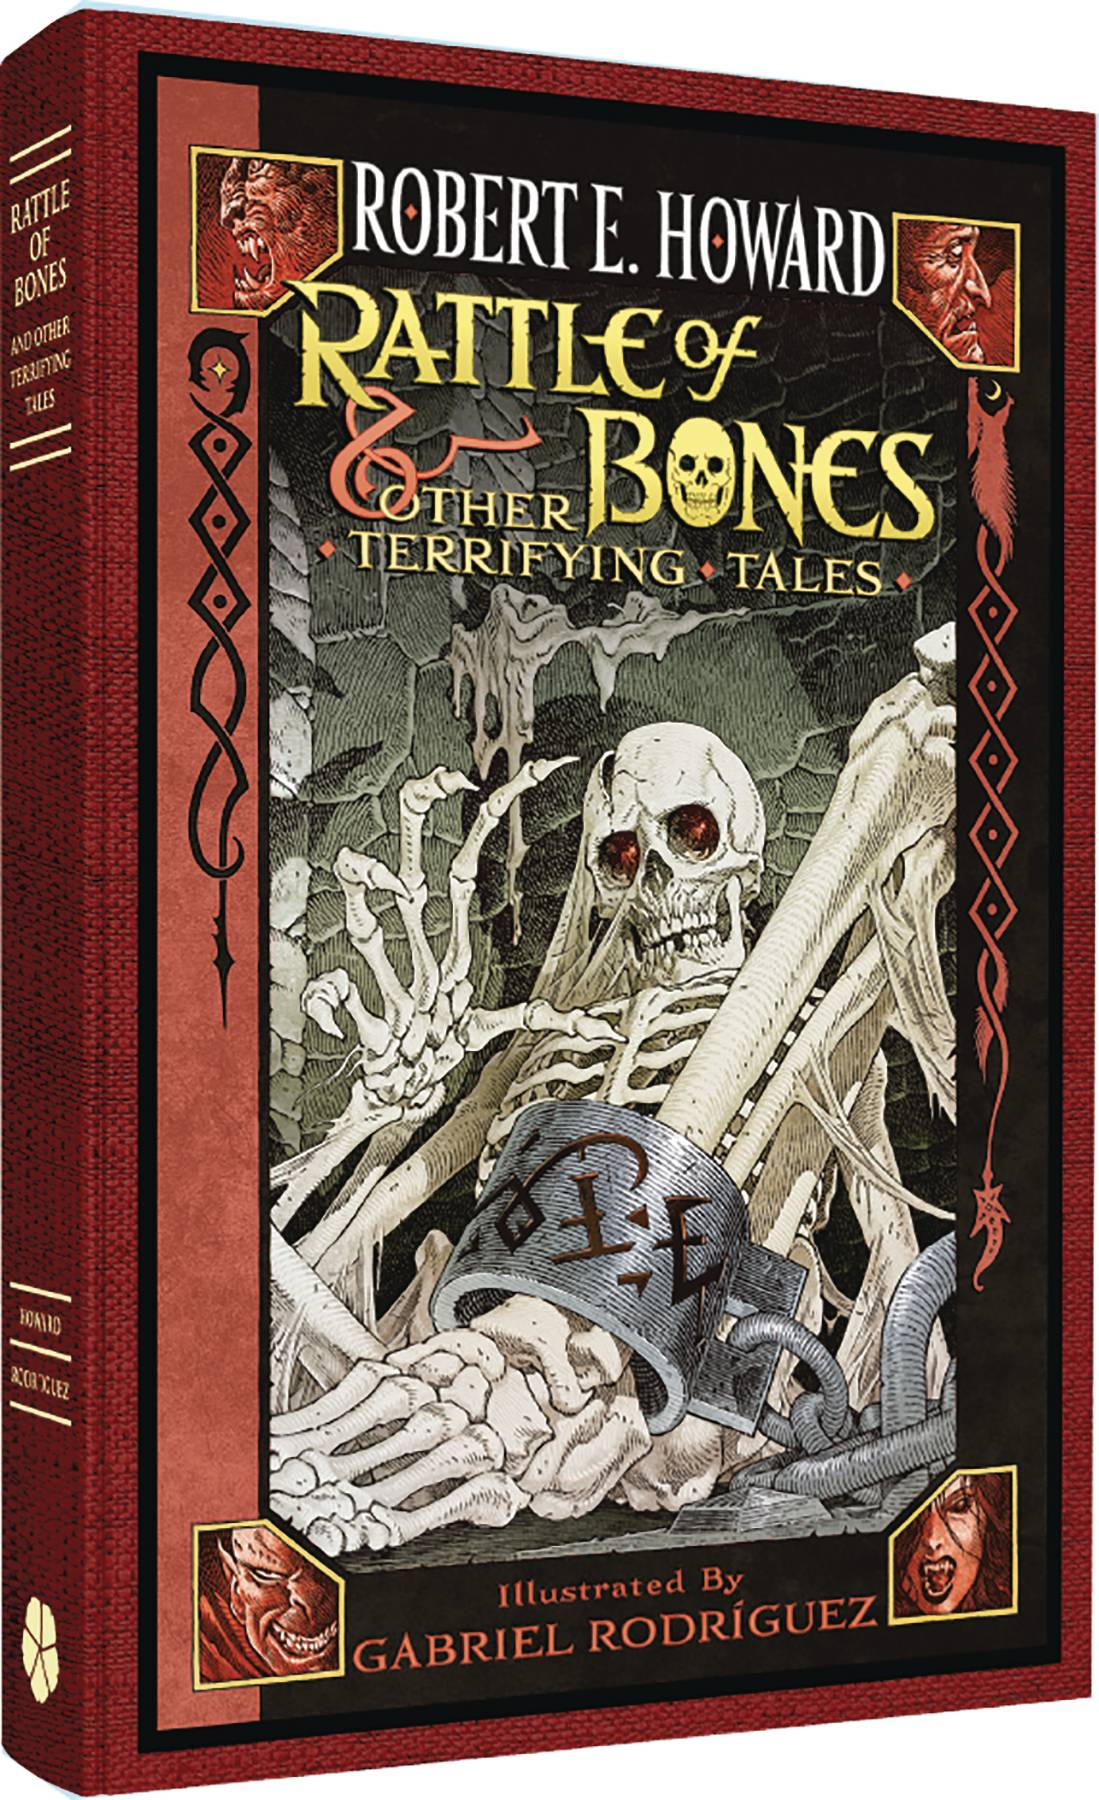 ROBERT E HOWARD RATTLE OF BONES HC